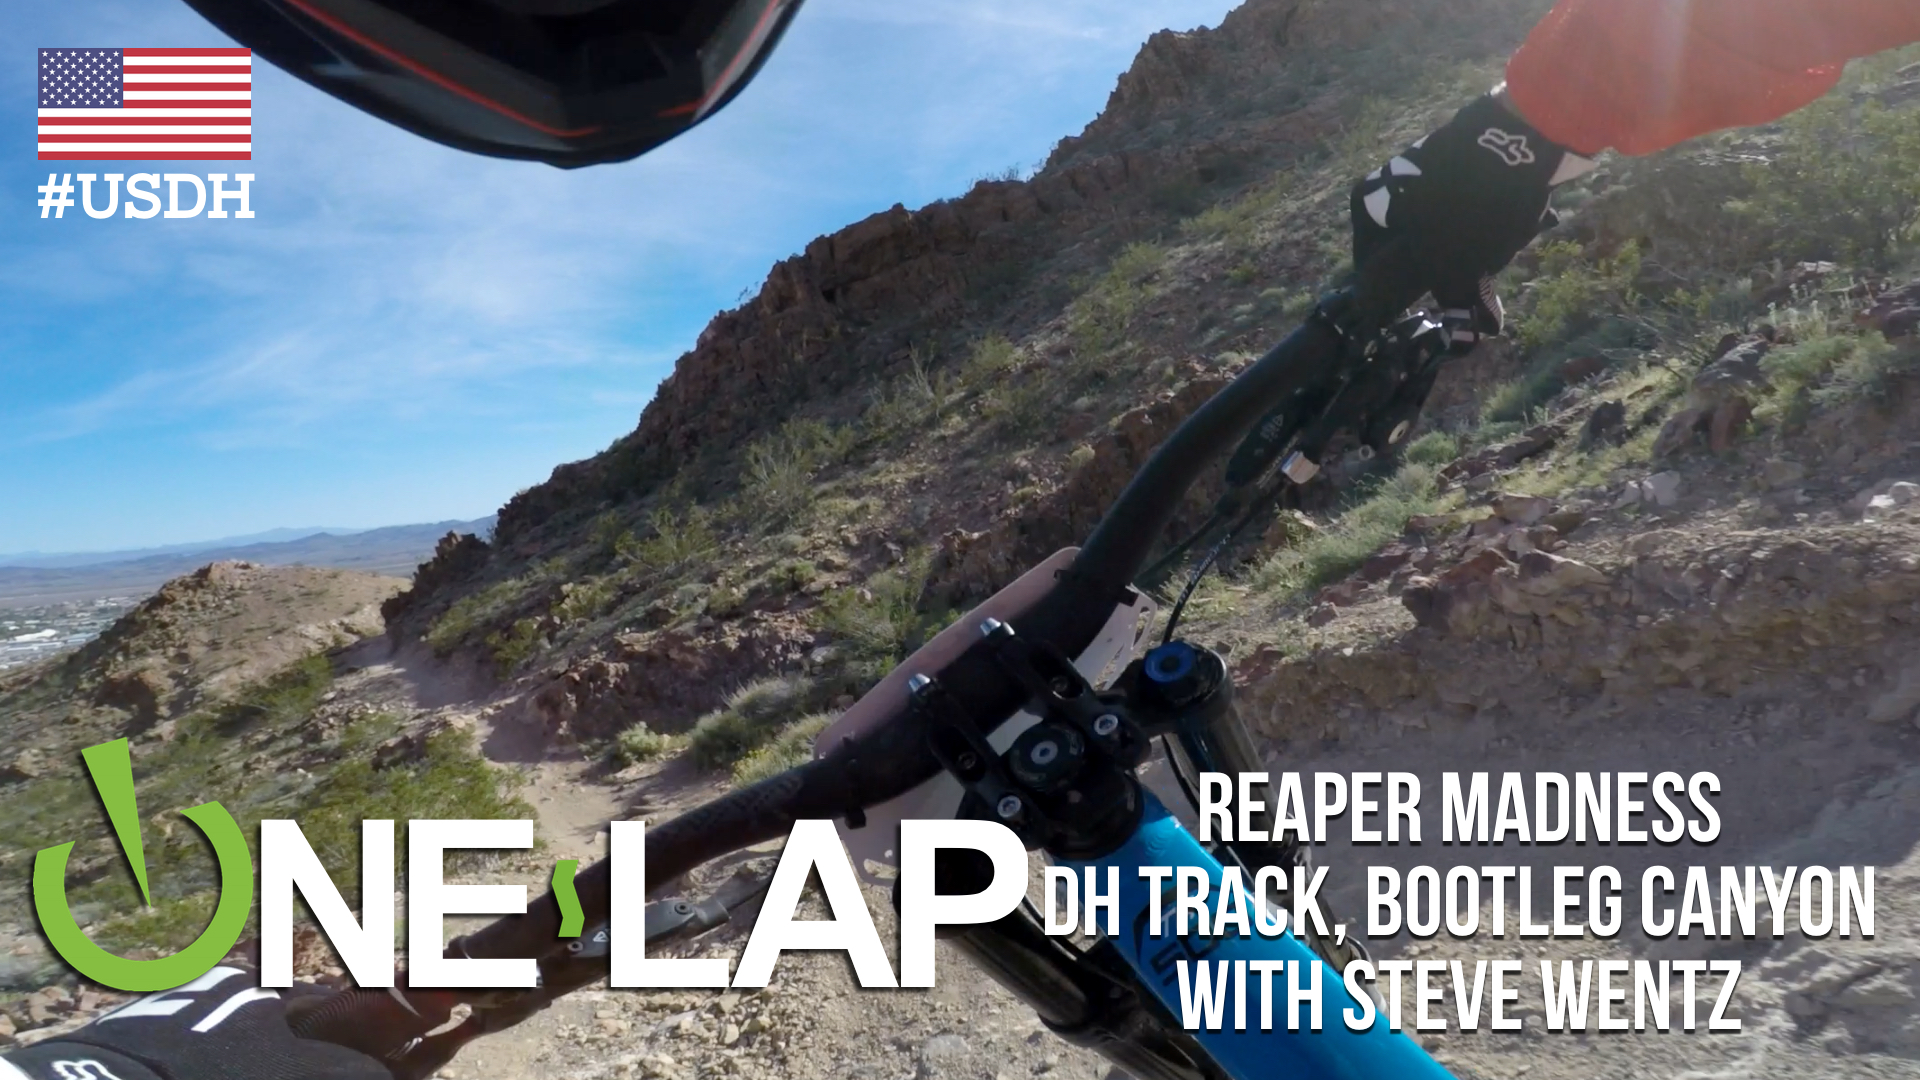 Brutal Bootleg Canyon - Reaper Madness DH Track with Steve Wentz